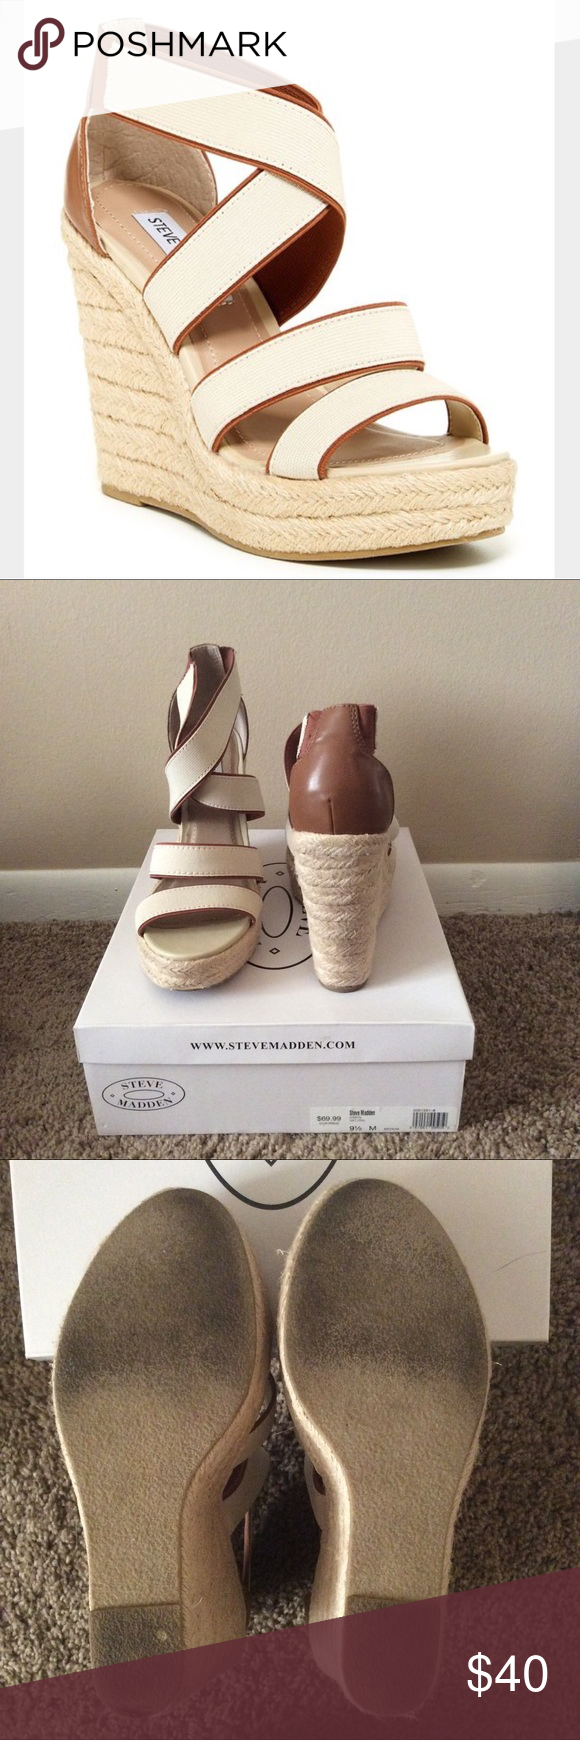 Steve Madden wedges Worn only a couple times, these wedges are the perfect shoes to dress up any casual outfit on a summer day. The wedges are comfortable and easy to walk in. They go with practically anything. Please ask any questions before purchasing. I usually wear a size 10, but these fit great. Steve Madden Shoes Wedges